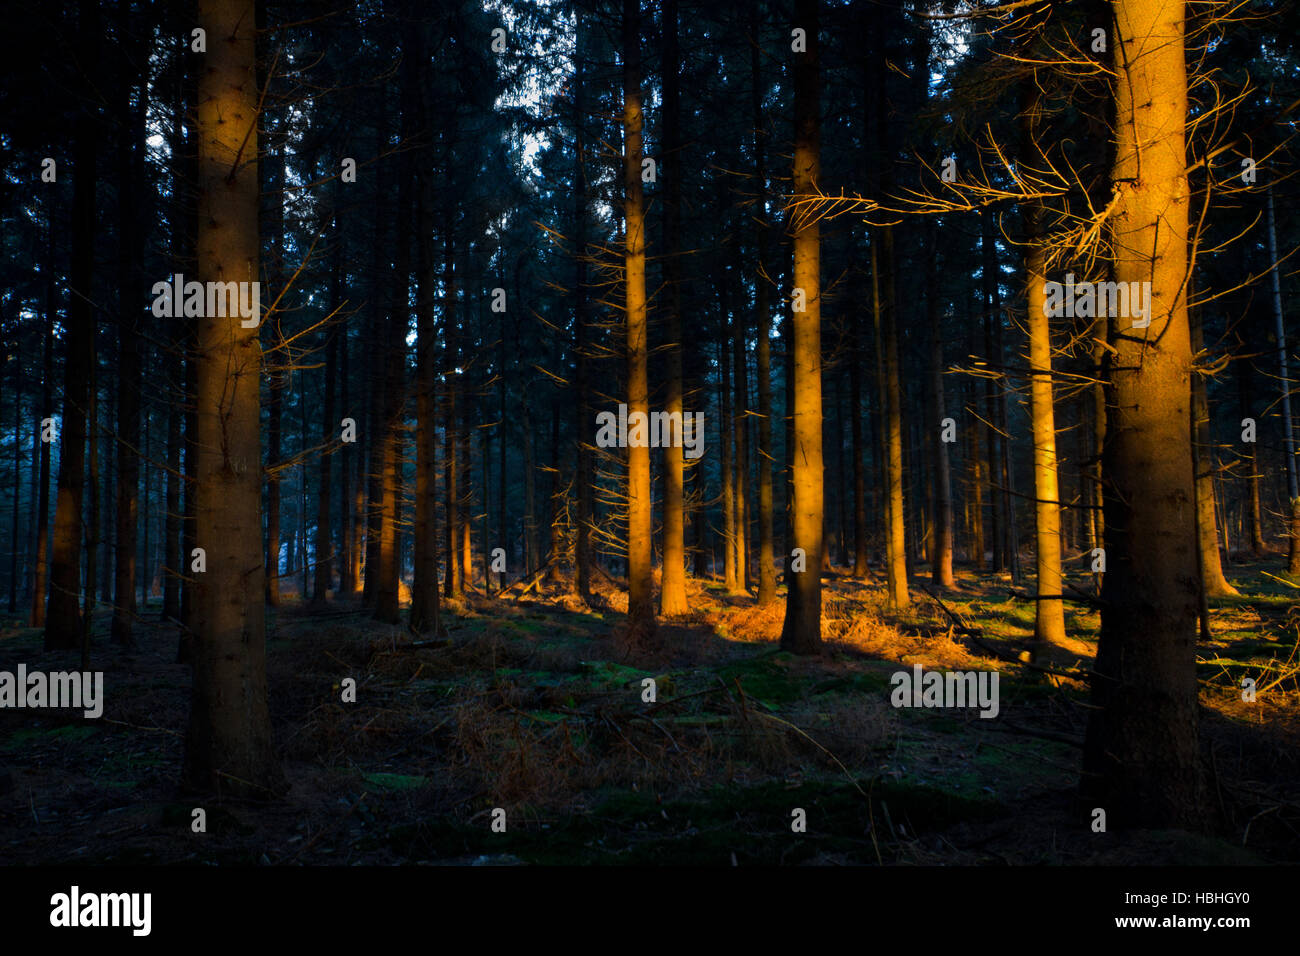 First sunlight in a dark forest lightens up the stems of pine trees - Stock Image